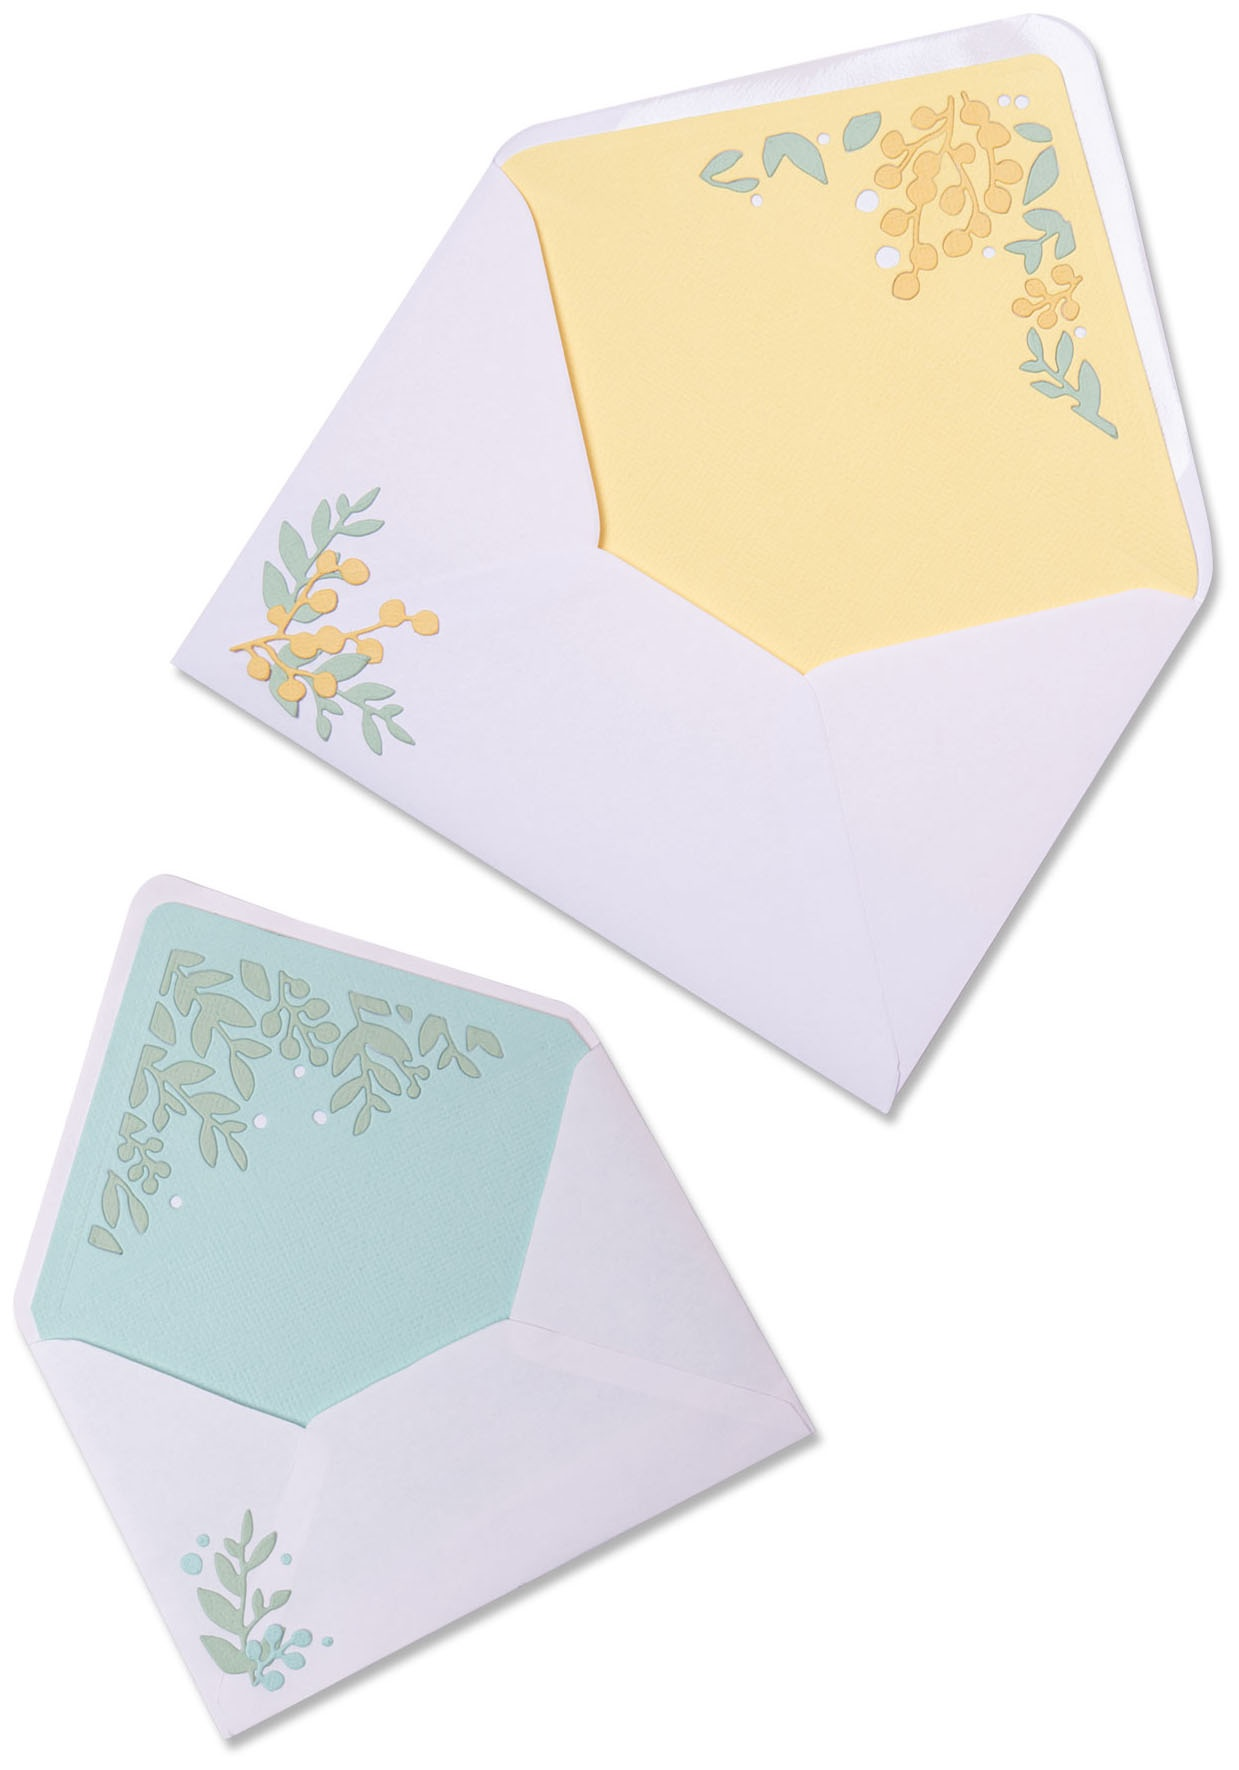 Sizzix Thinlits Dies By Sharon Drury 7/Pkg-Foliage Envelope Liners